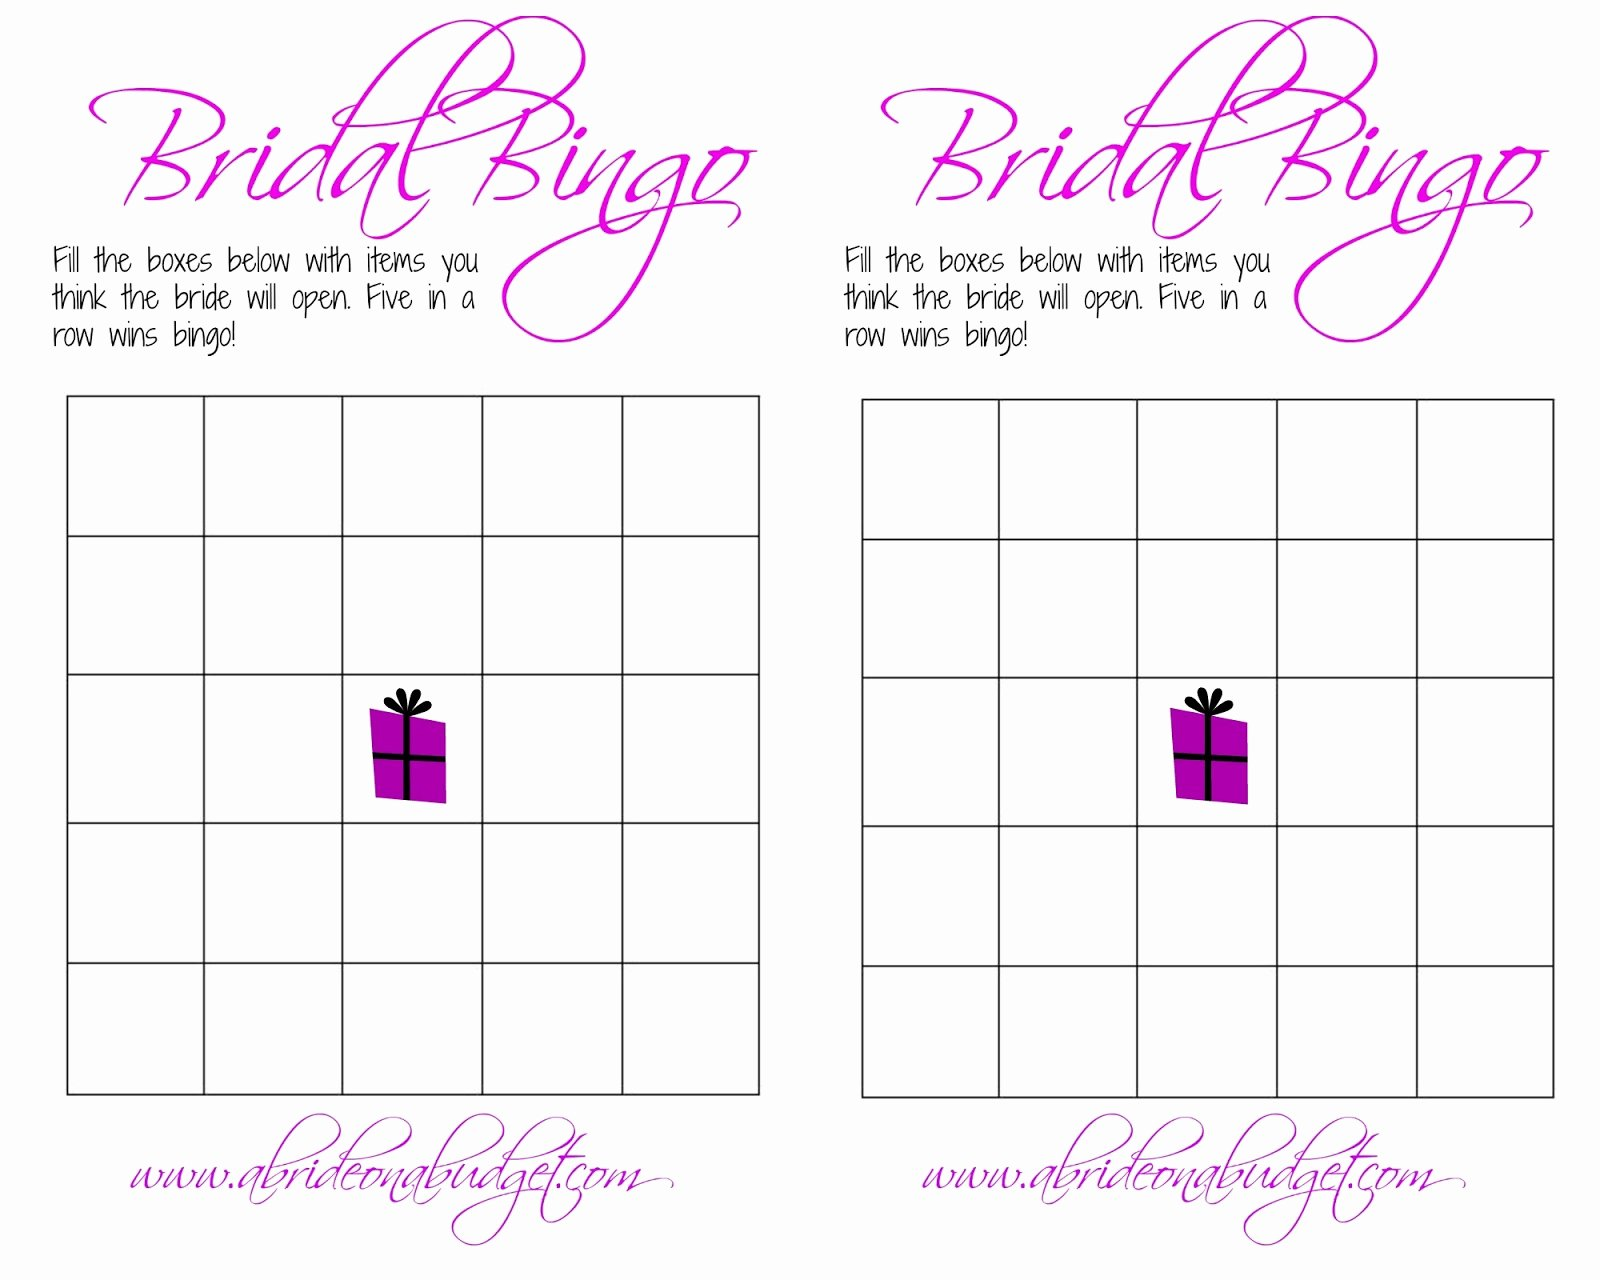 Bridal Bingo Template Inspirational Bridal Bingo and A Free Printable